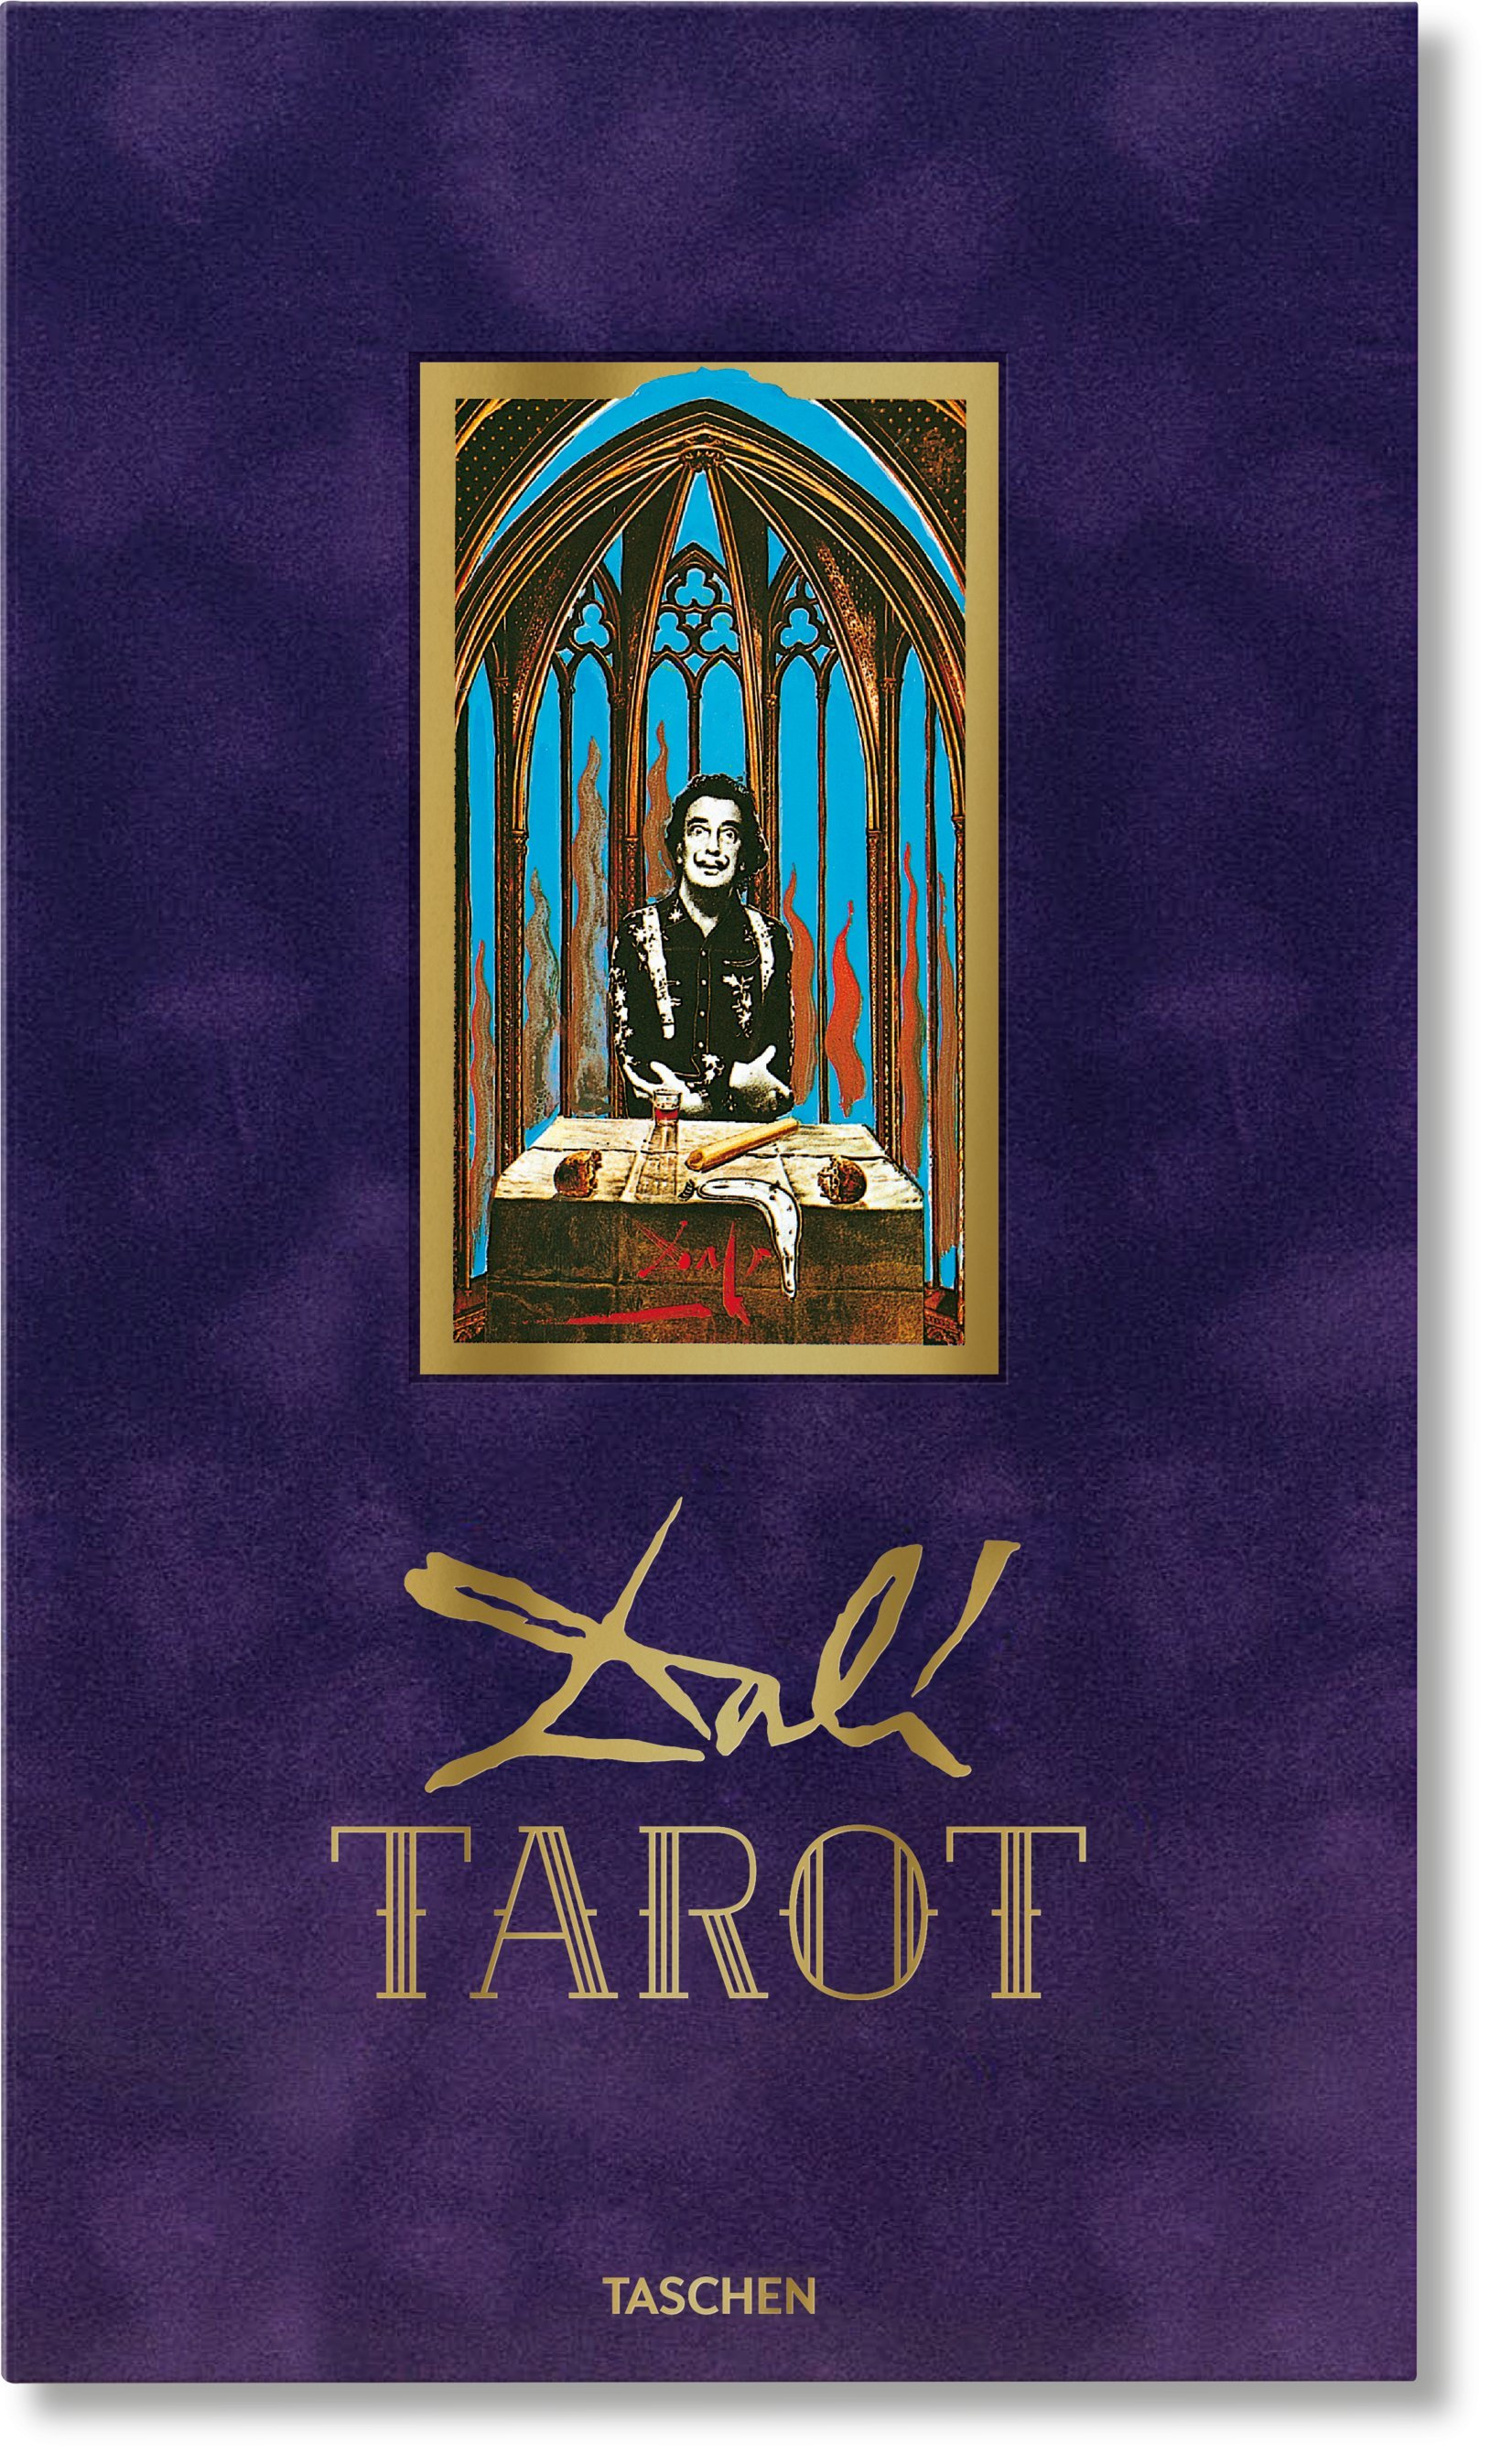 va-dali_tarot_new_edition-cover_44640.jpg